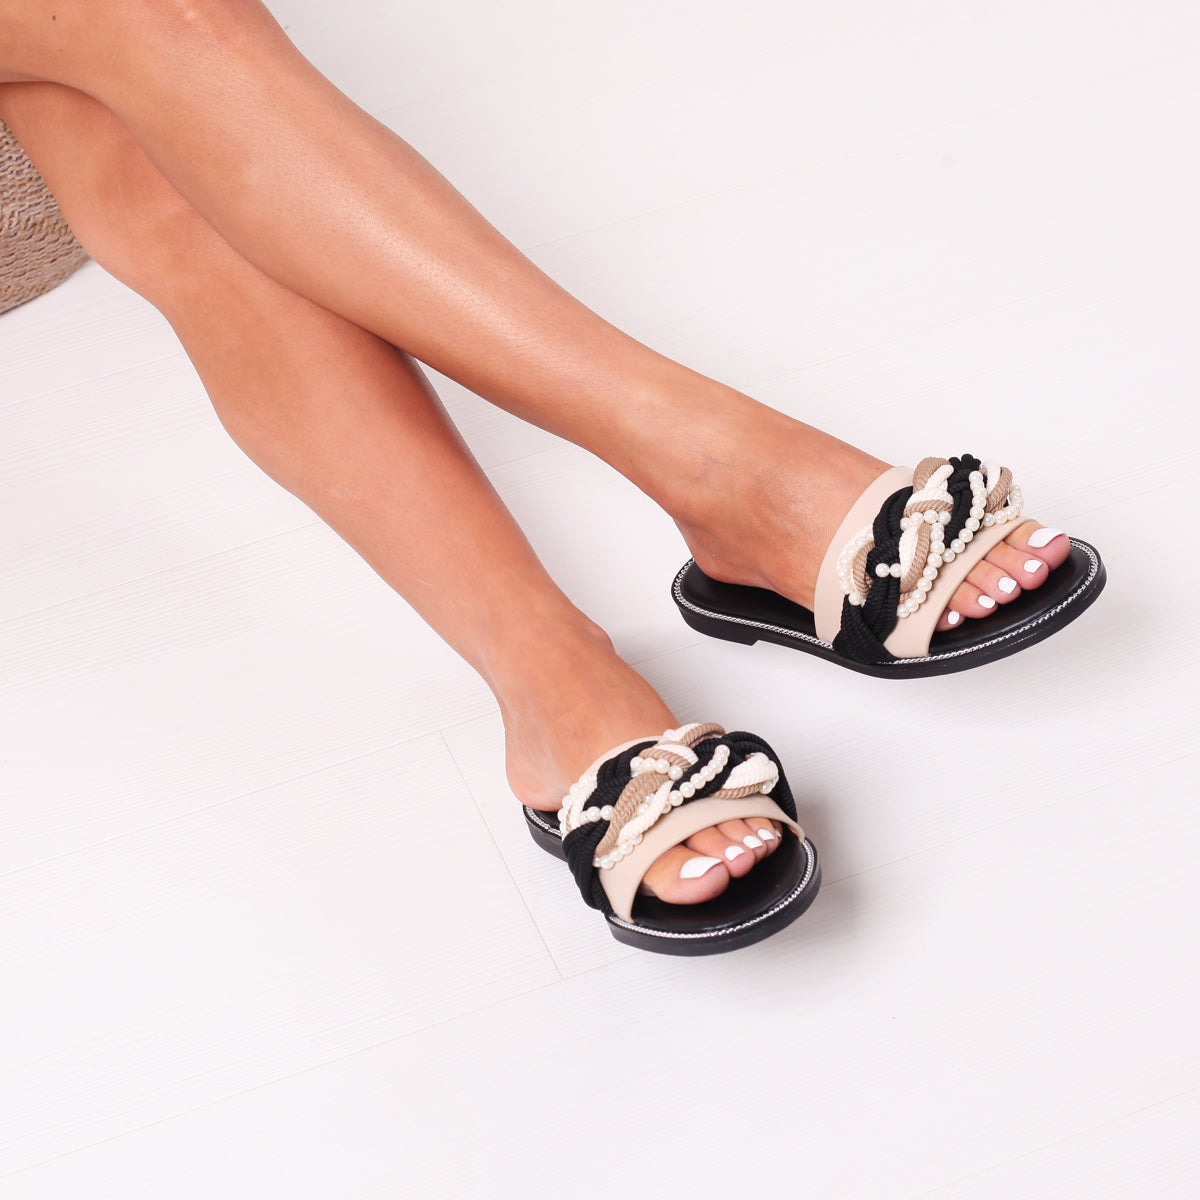 LEETA - Sandals - linzi-shoes.myshopify.com